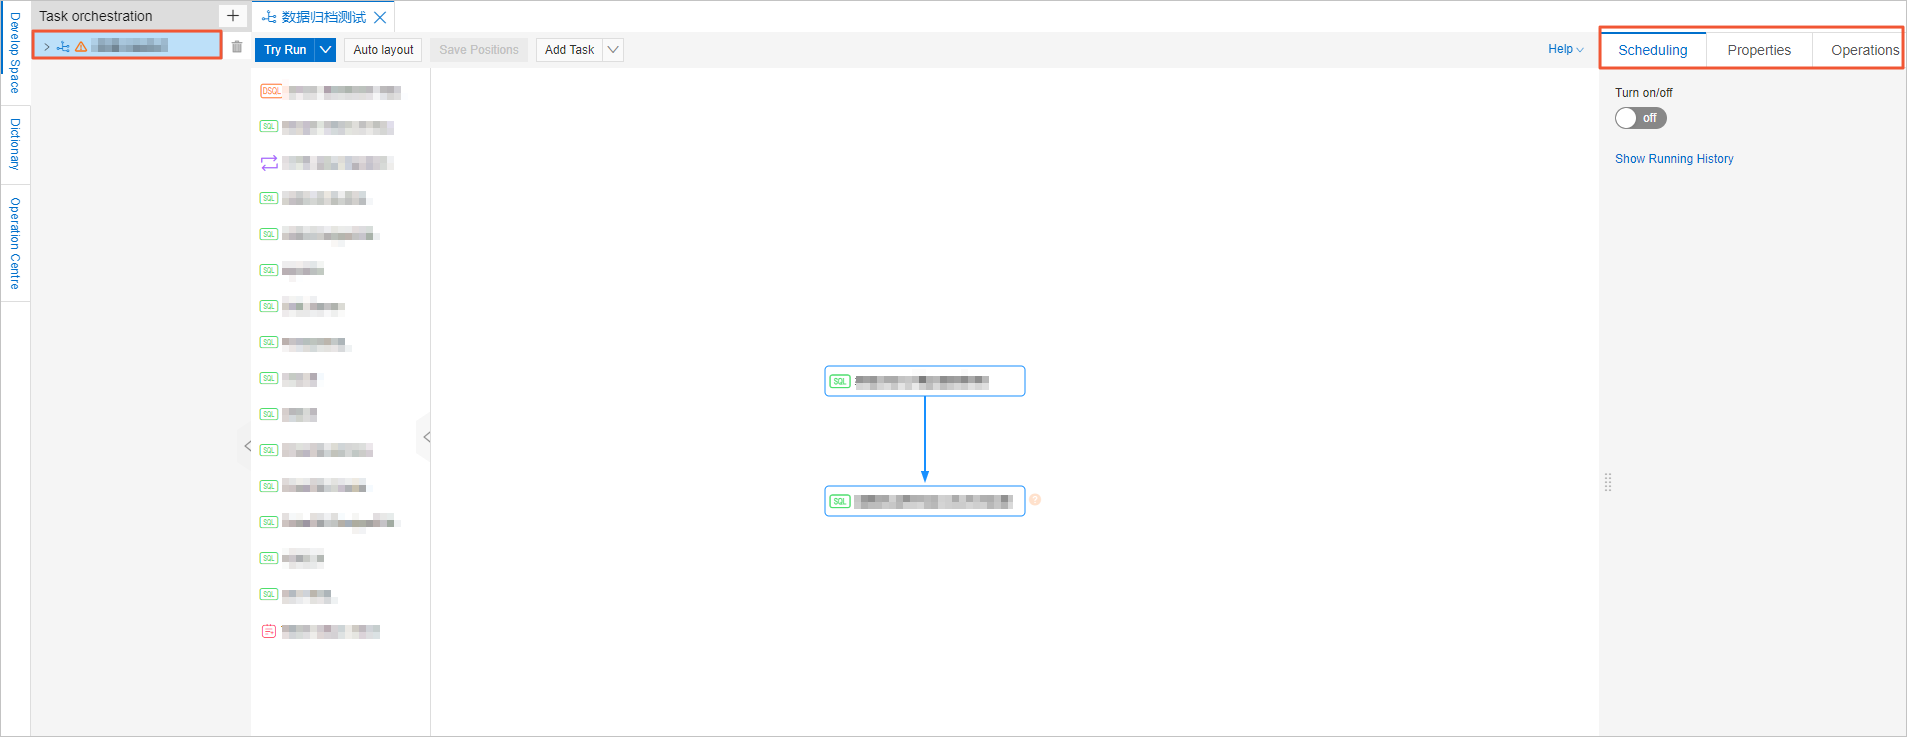 View a task flow